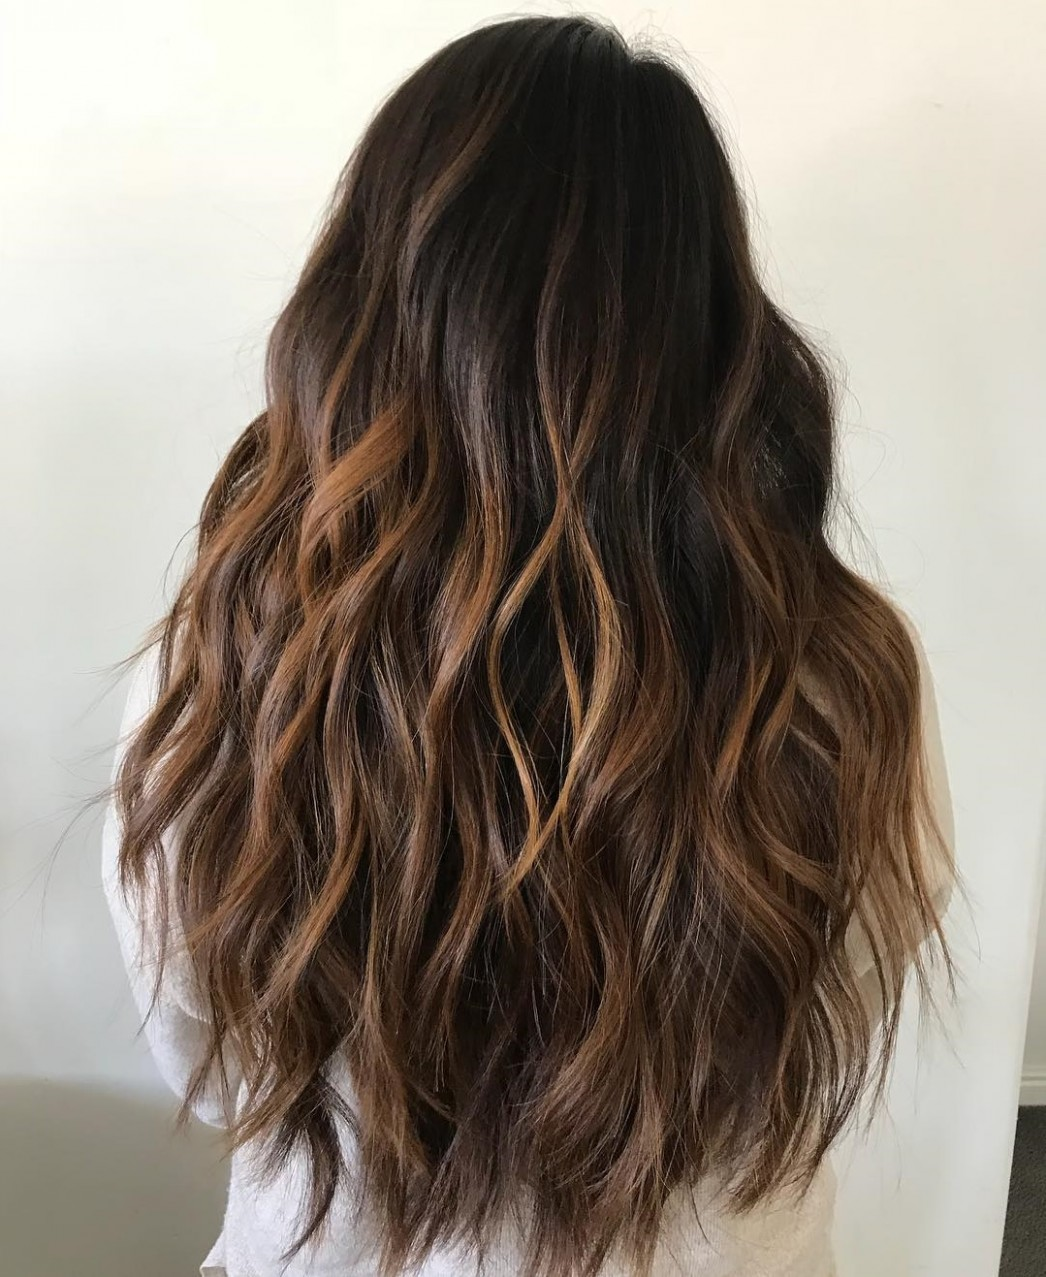 10 Haircuts For Thick Wavy Hair To Shape And Alleviate Your Haircuts For Long Wavy Hair